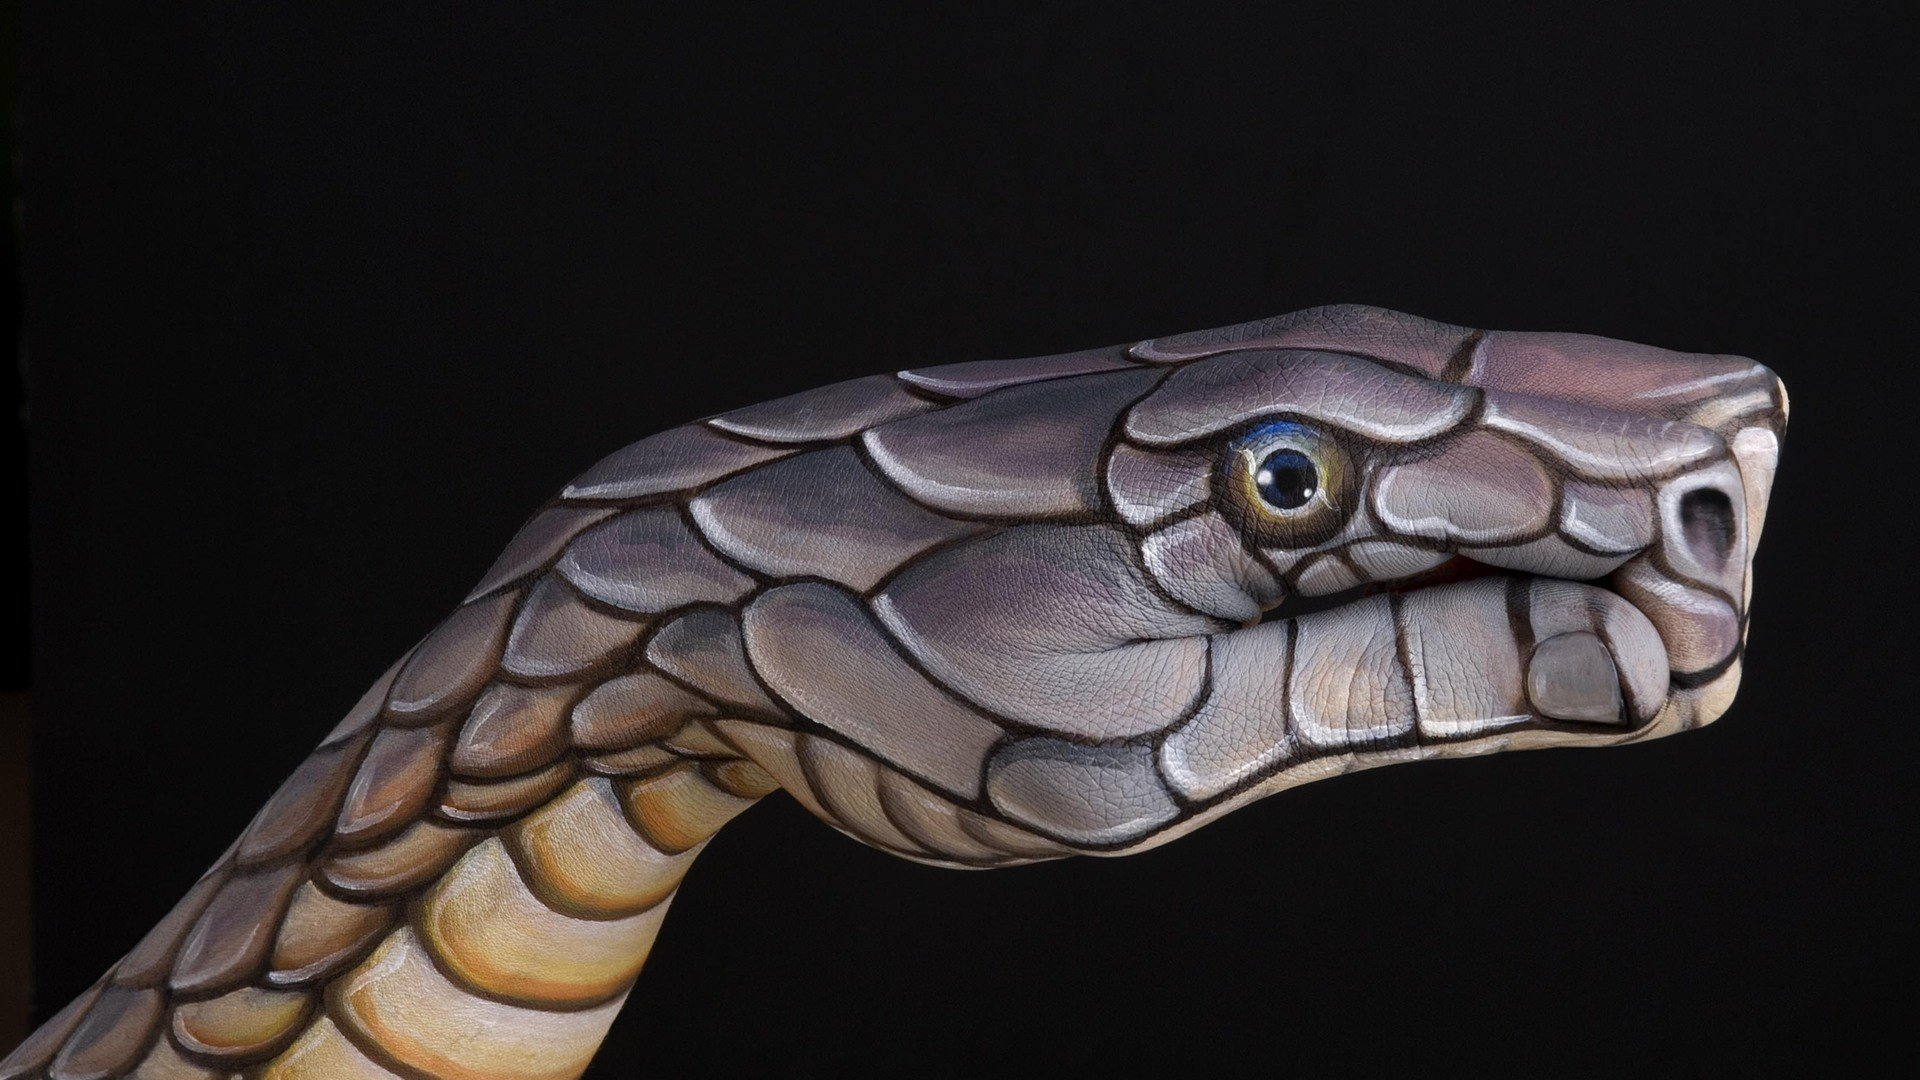 Hands Snakes Black Background Body Painting Wallpaper 1920x1080 249183 Wallpaperup